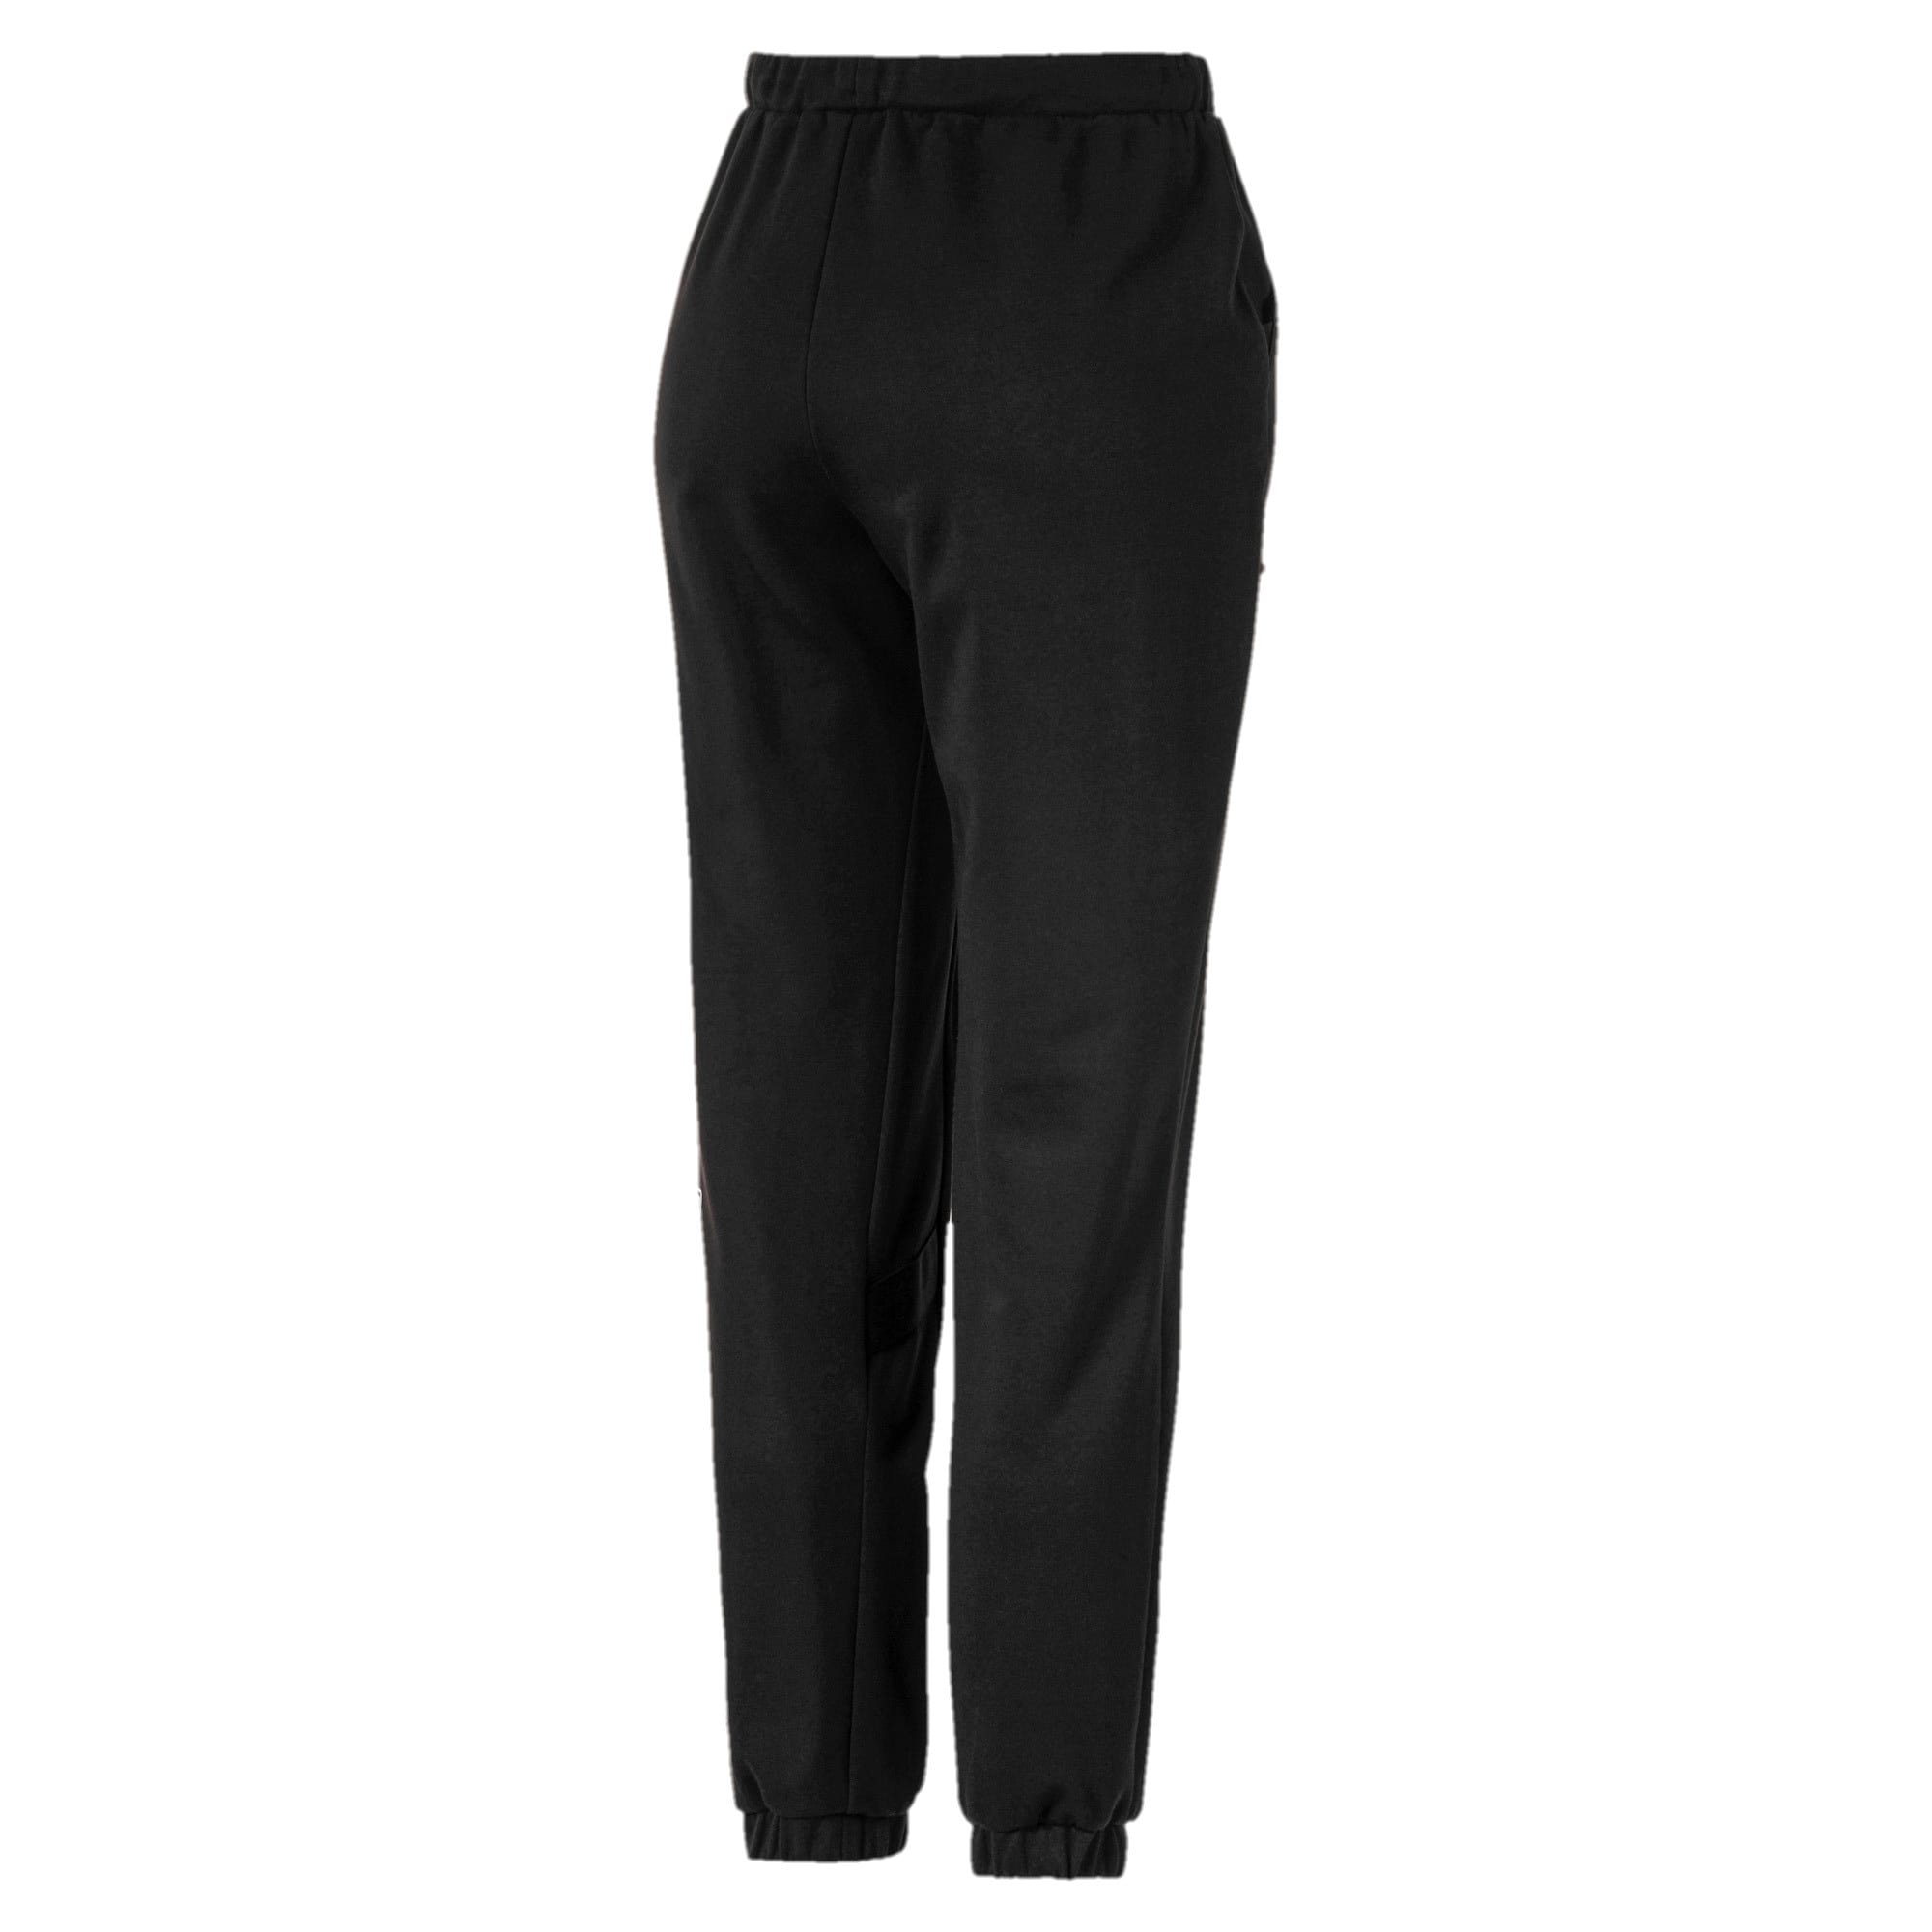 Thumbnail 5 of HIT Feel It Knitted Women's Training Sweatpants, Puma Black, medium